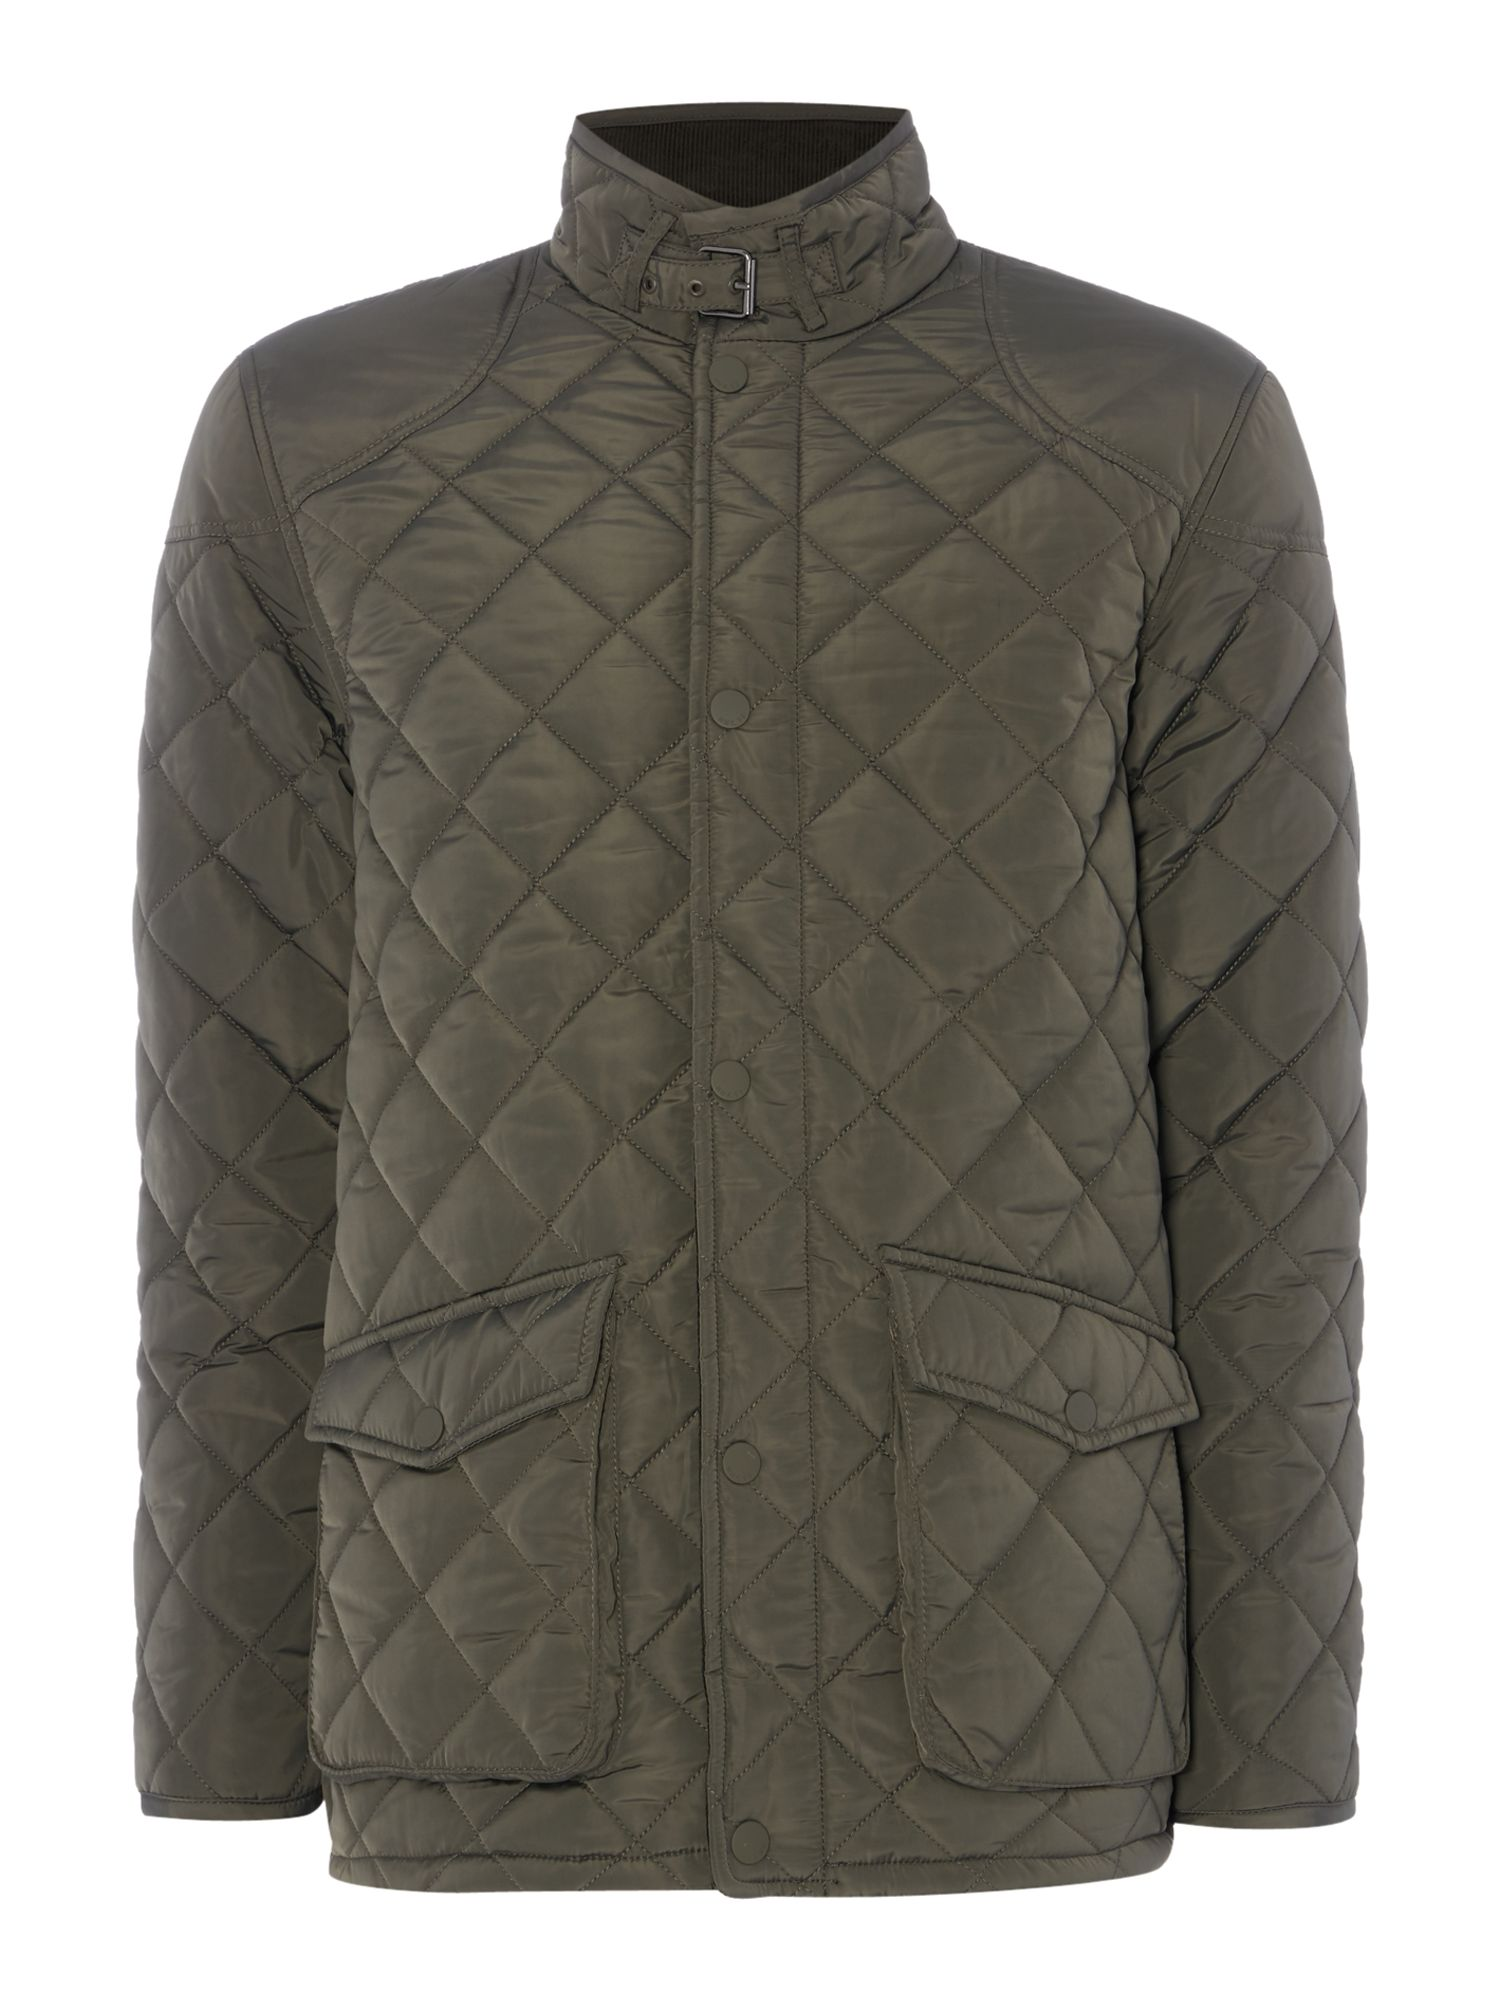 Howick Men's Howick The Pembroke Quilted Jacket, Evergreen